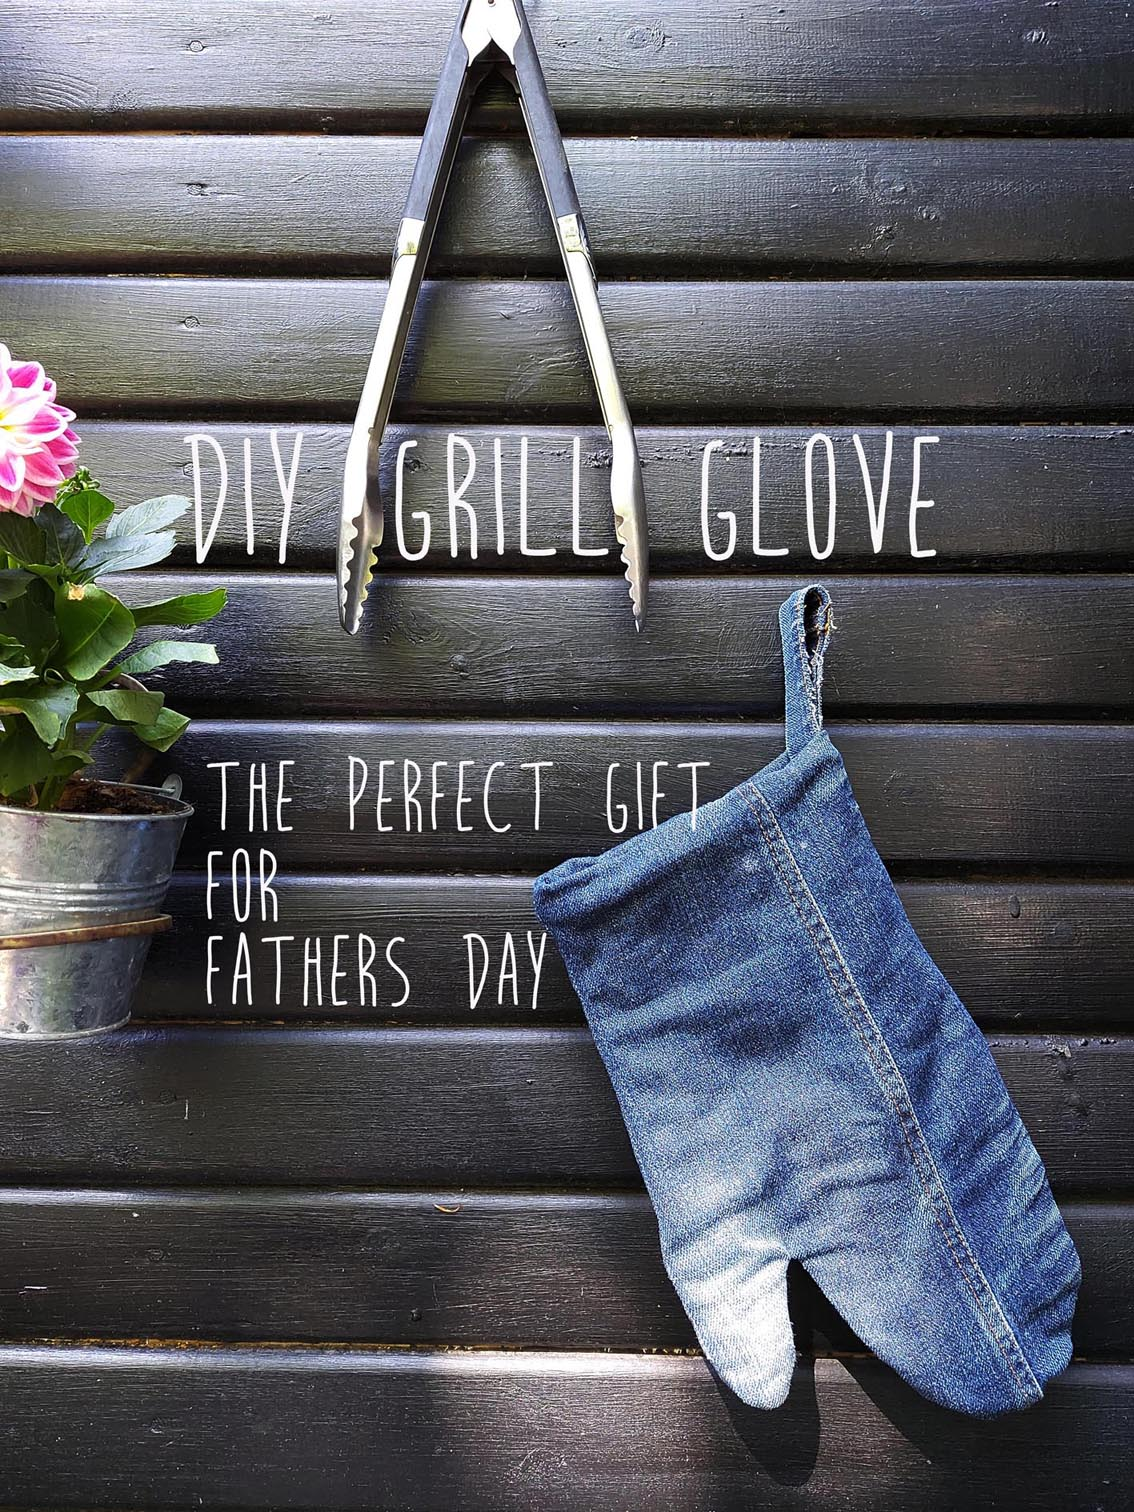 DIY grill glove you can make yourself of recycled materials.